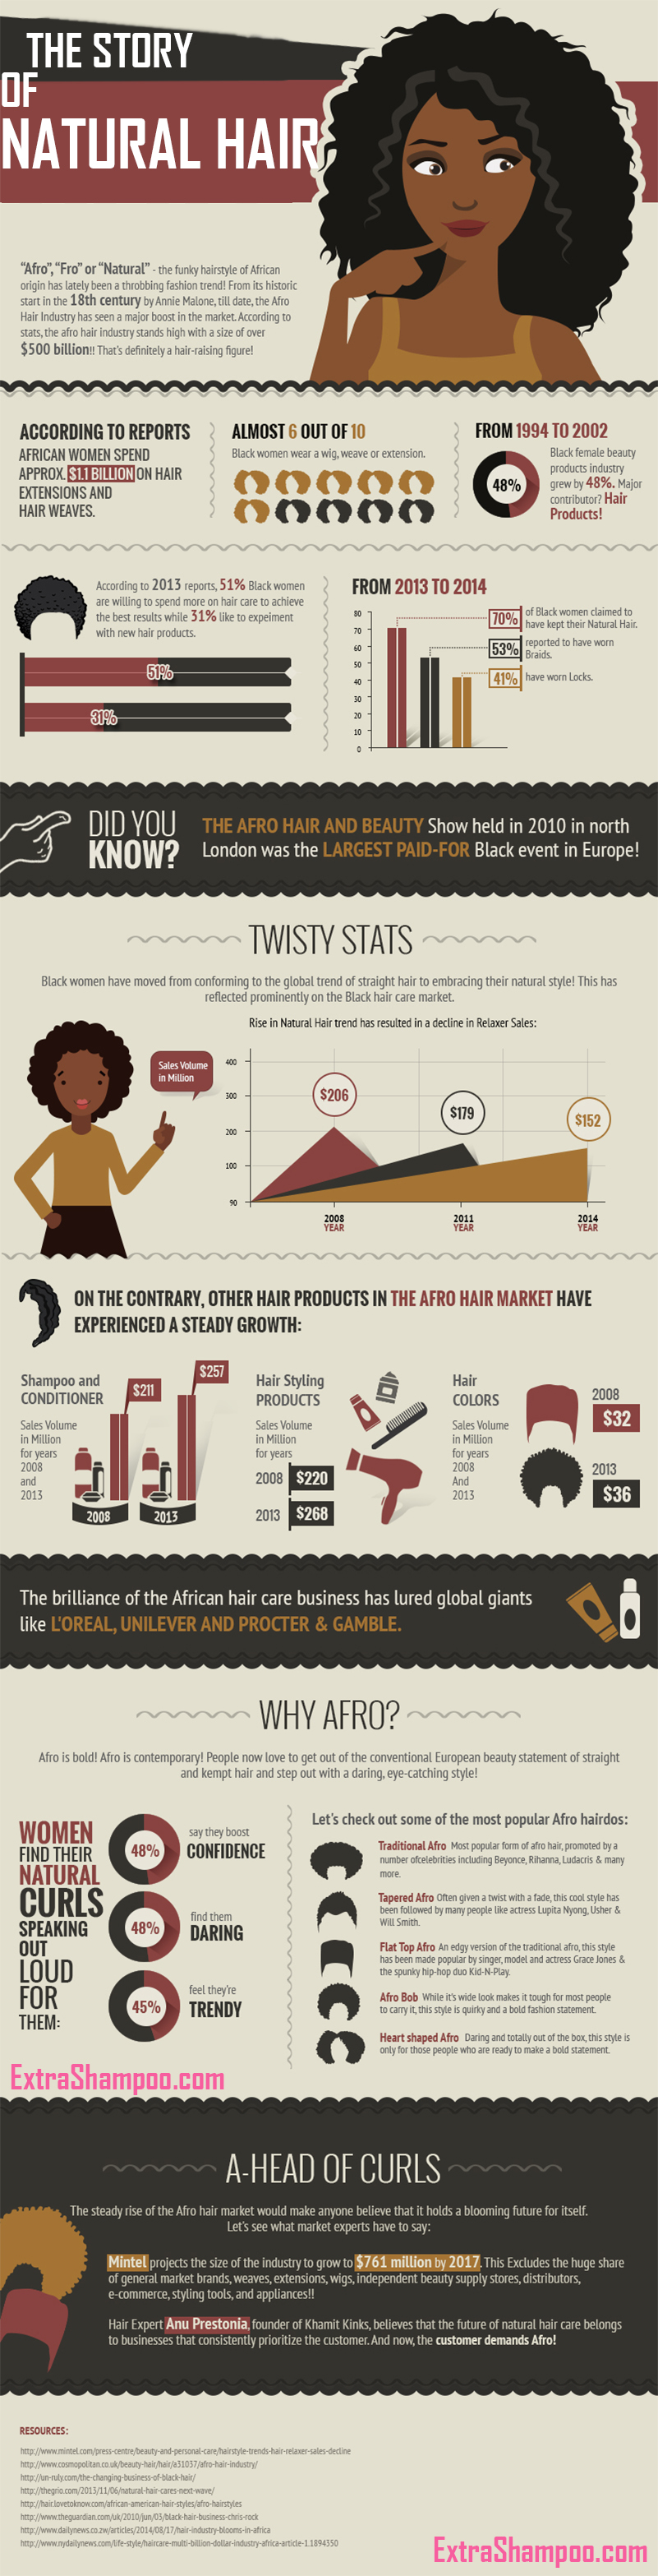 The Story Of Natural Hair Infographic